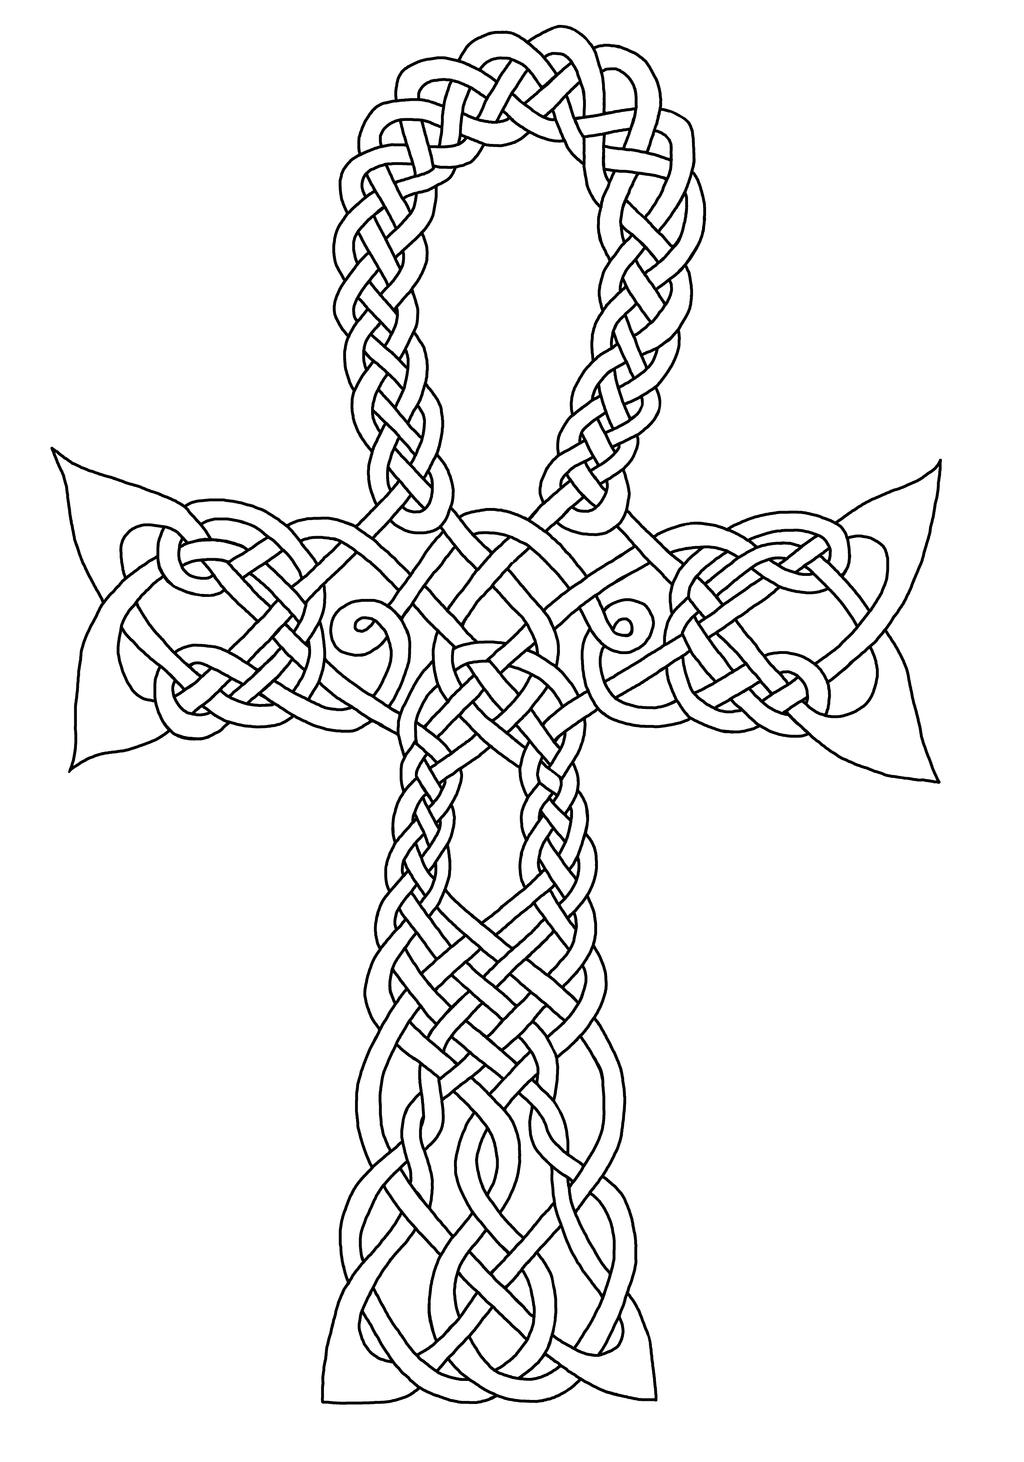 Celtic Ahnk Re-Created (Coloring) by Artistfire on DeviantArt